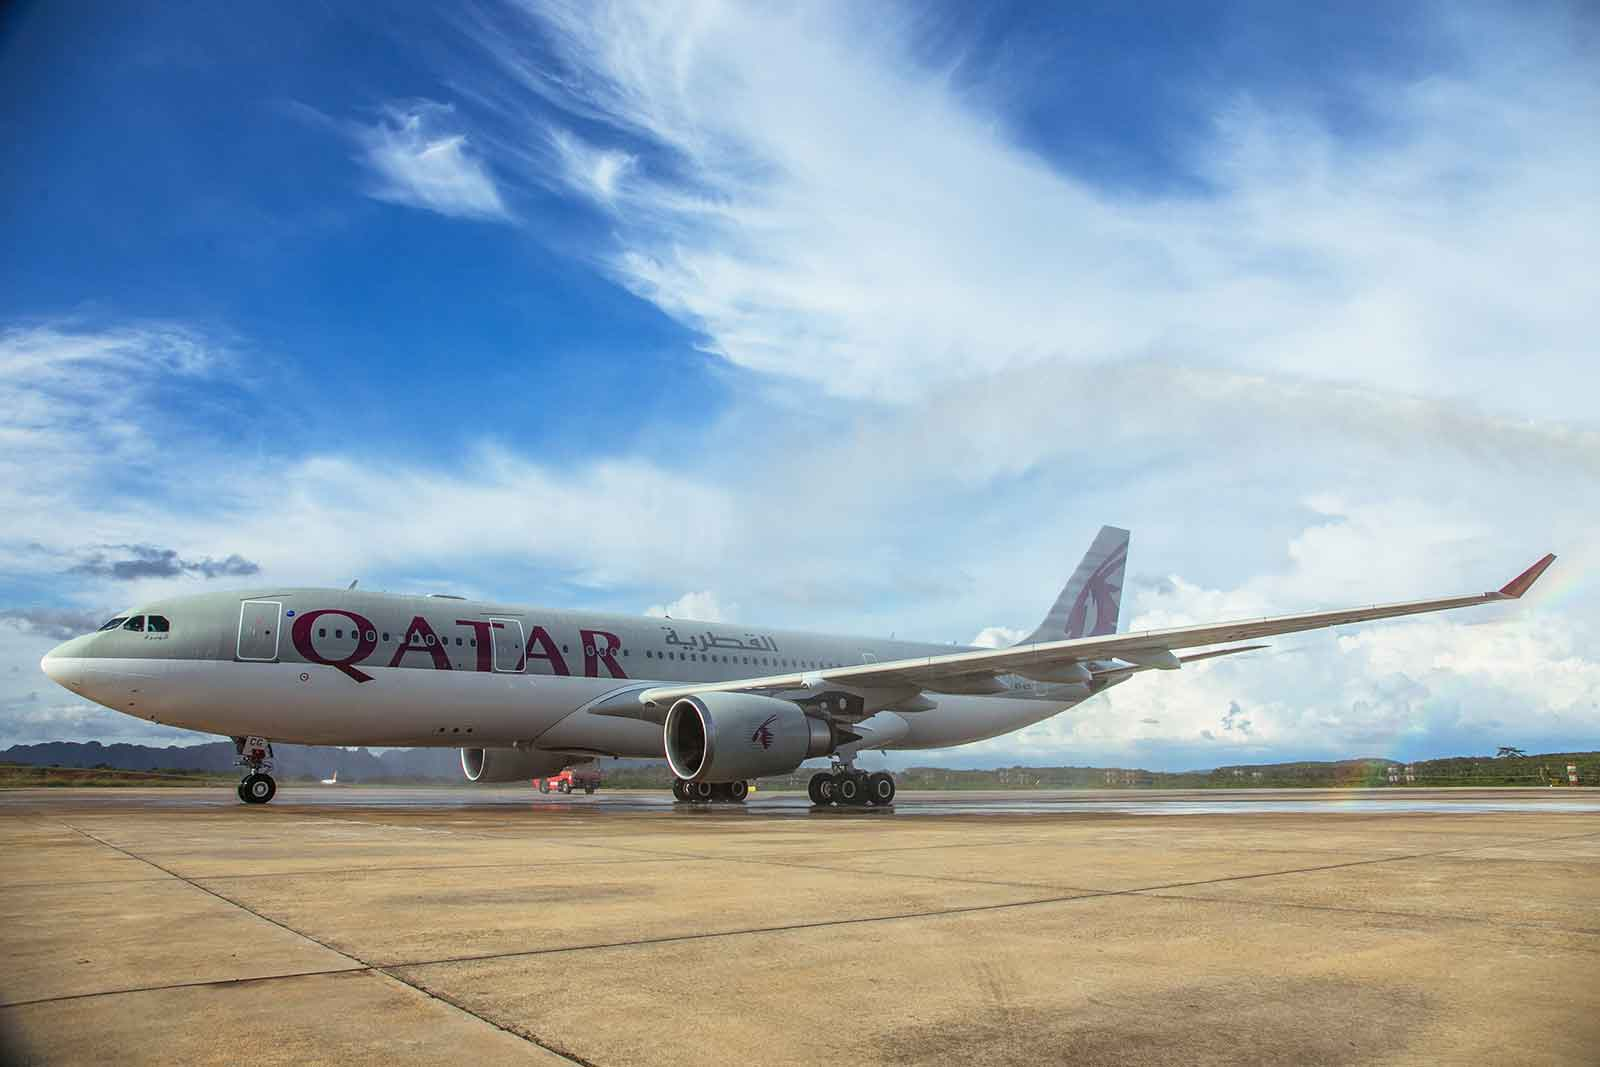 Qatar Airways becomes the first Middle Eastern airline to serve the popular beach destination of Krabi